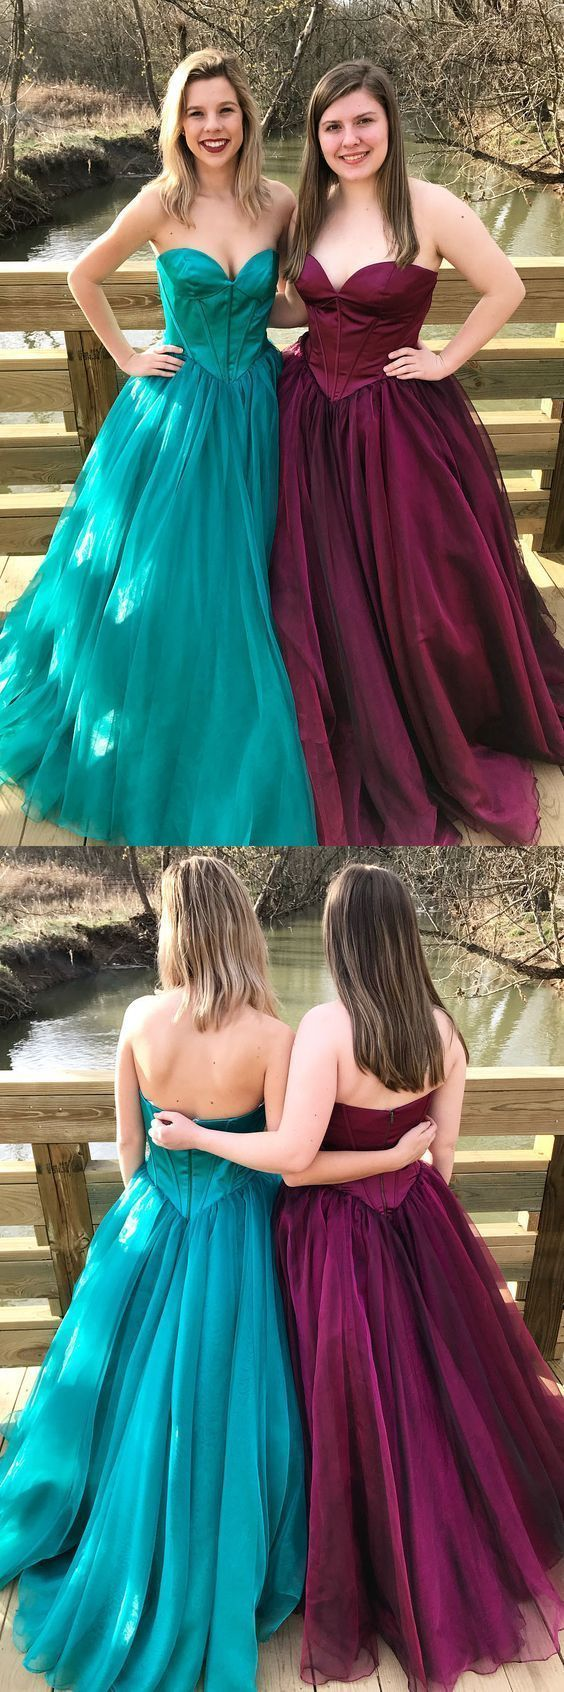 F0194 Sweetheart Princess Green/Burgundy Long Prom Dress